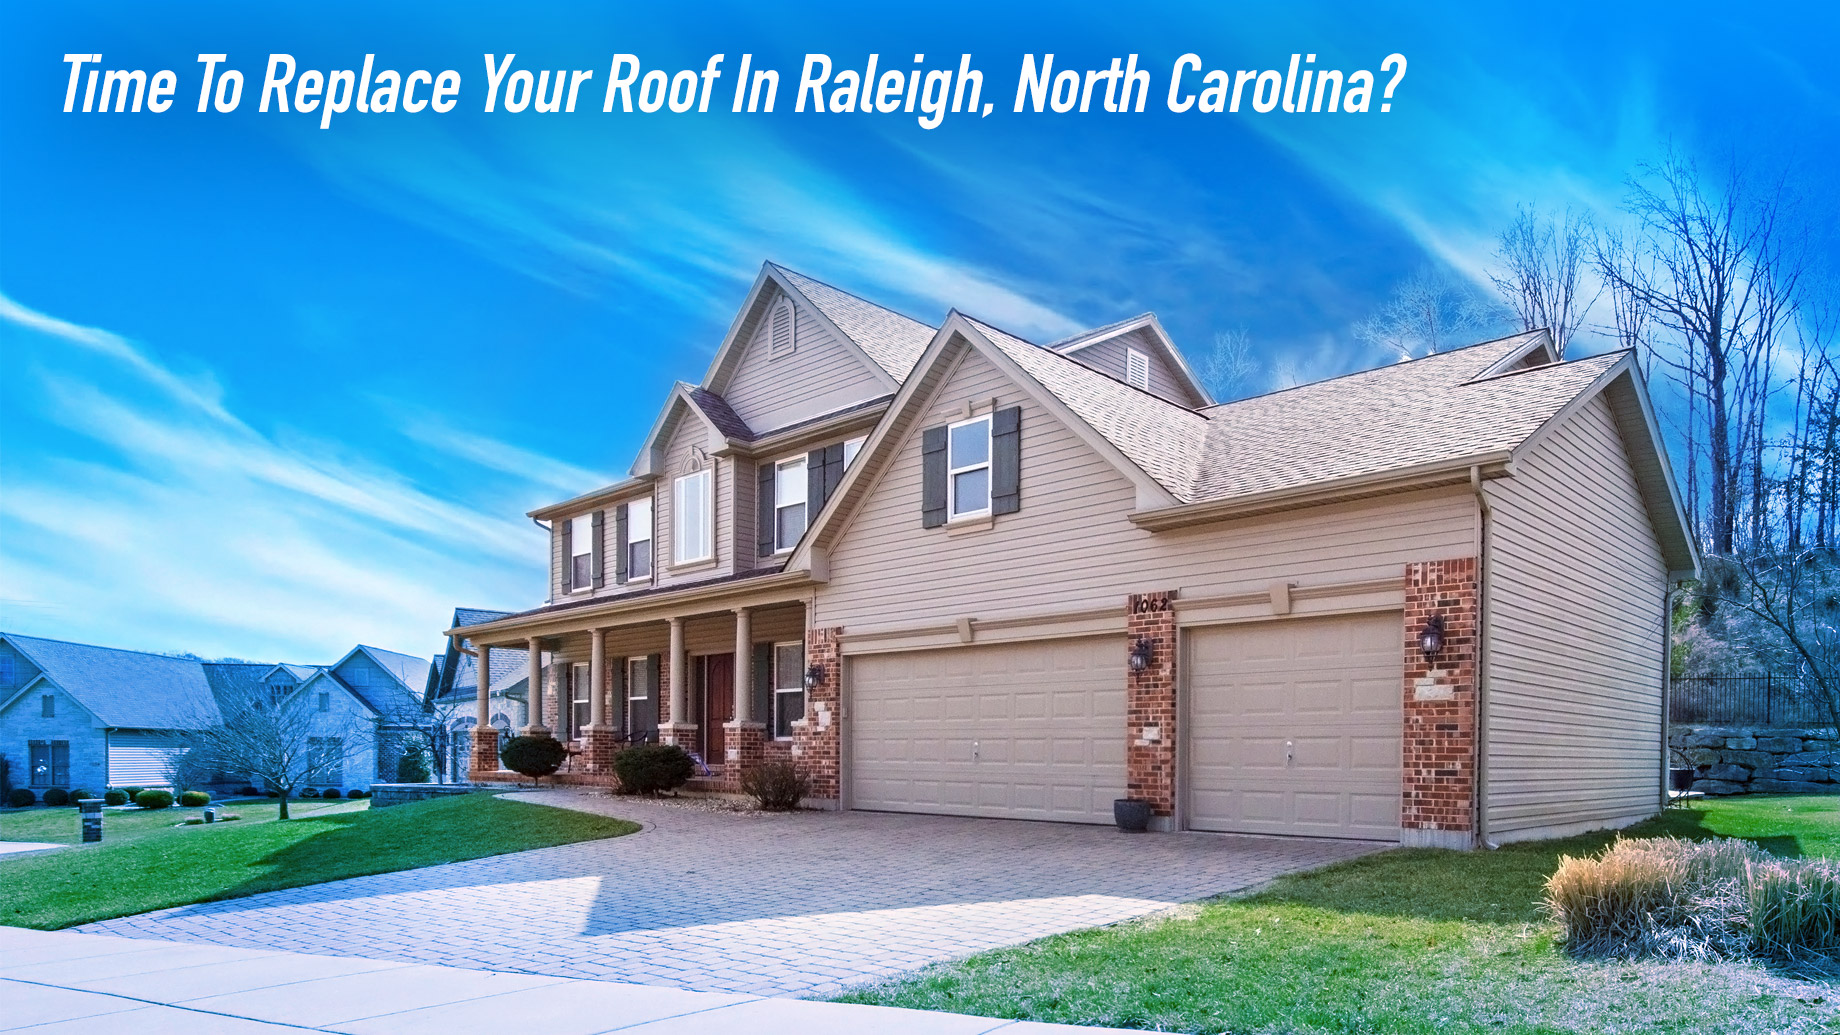 Time To Replace Your Roof In Raleigh, North Carolina? Check Out Our Roofing Raleigh Guide